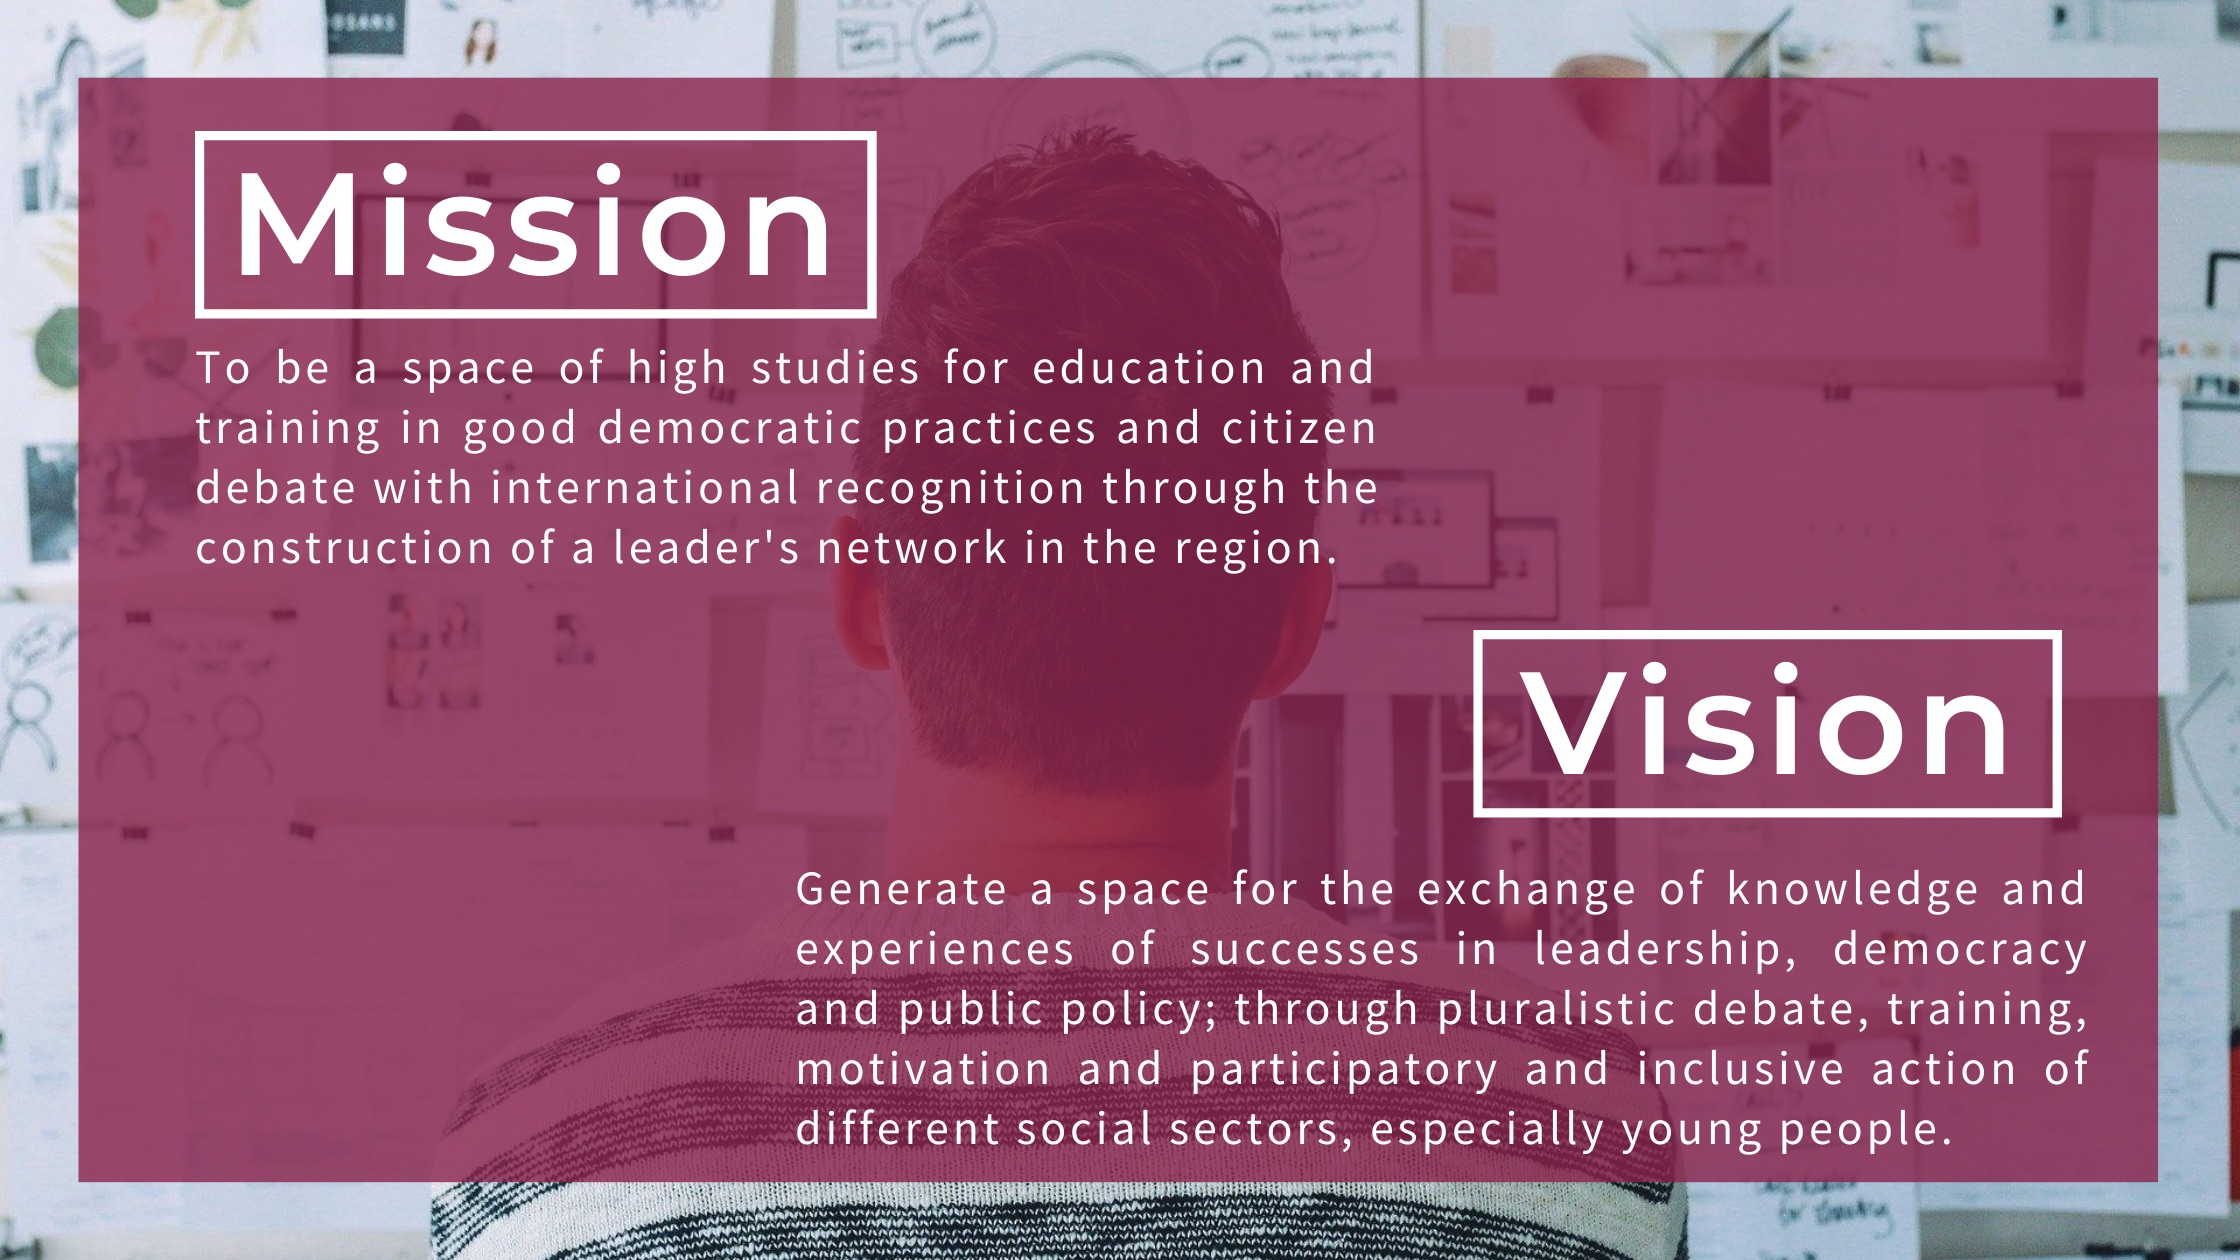 Mission, vision, Institute of Citizen Studies